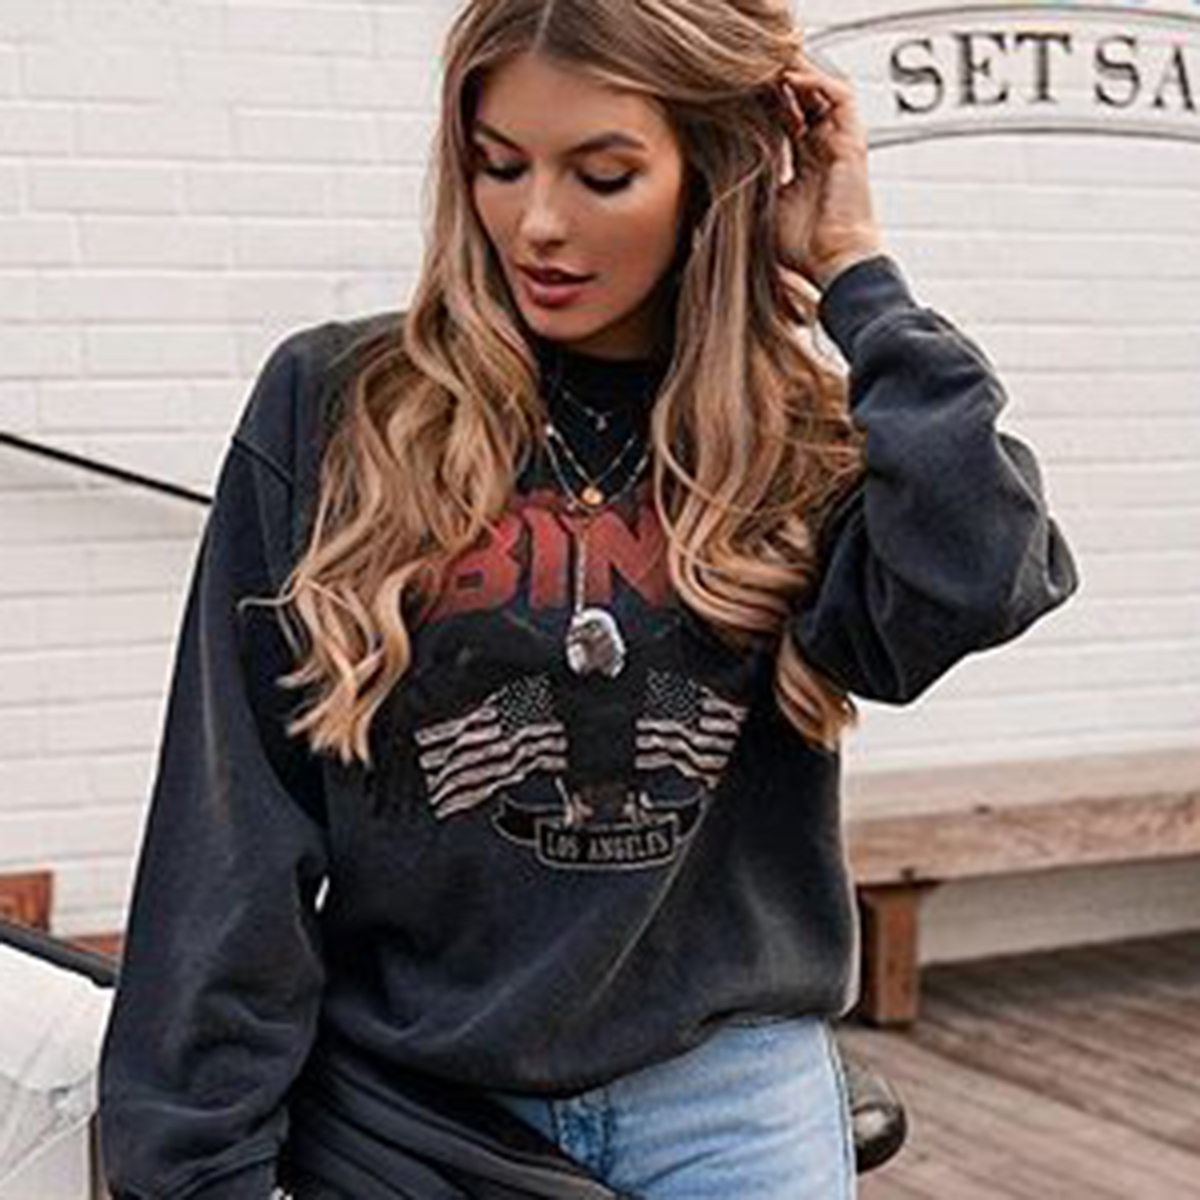 Eagle Letter Print Women Thin Shirt Autumn 2020 O Neck Long Sleeve Contrast Cotton Blusa Fashion Streetwear Women Punk Shirt